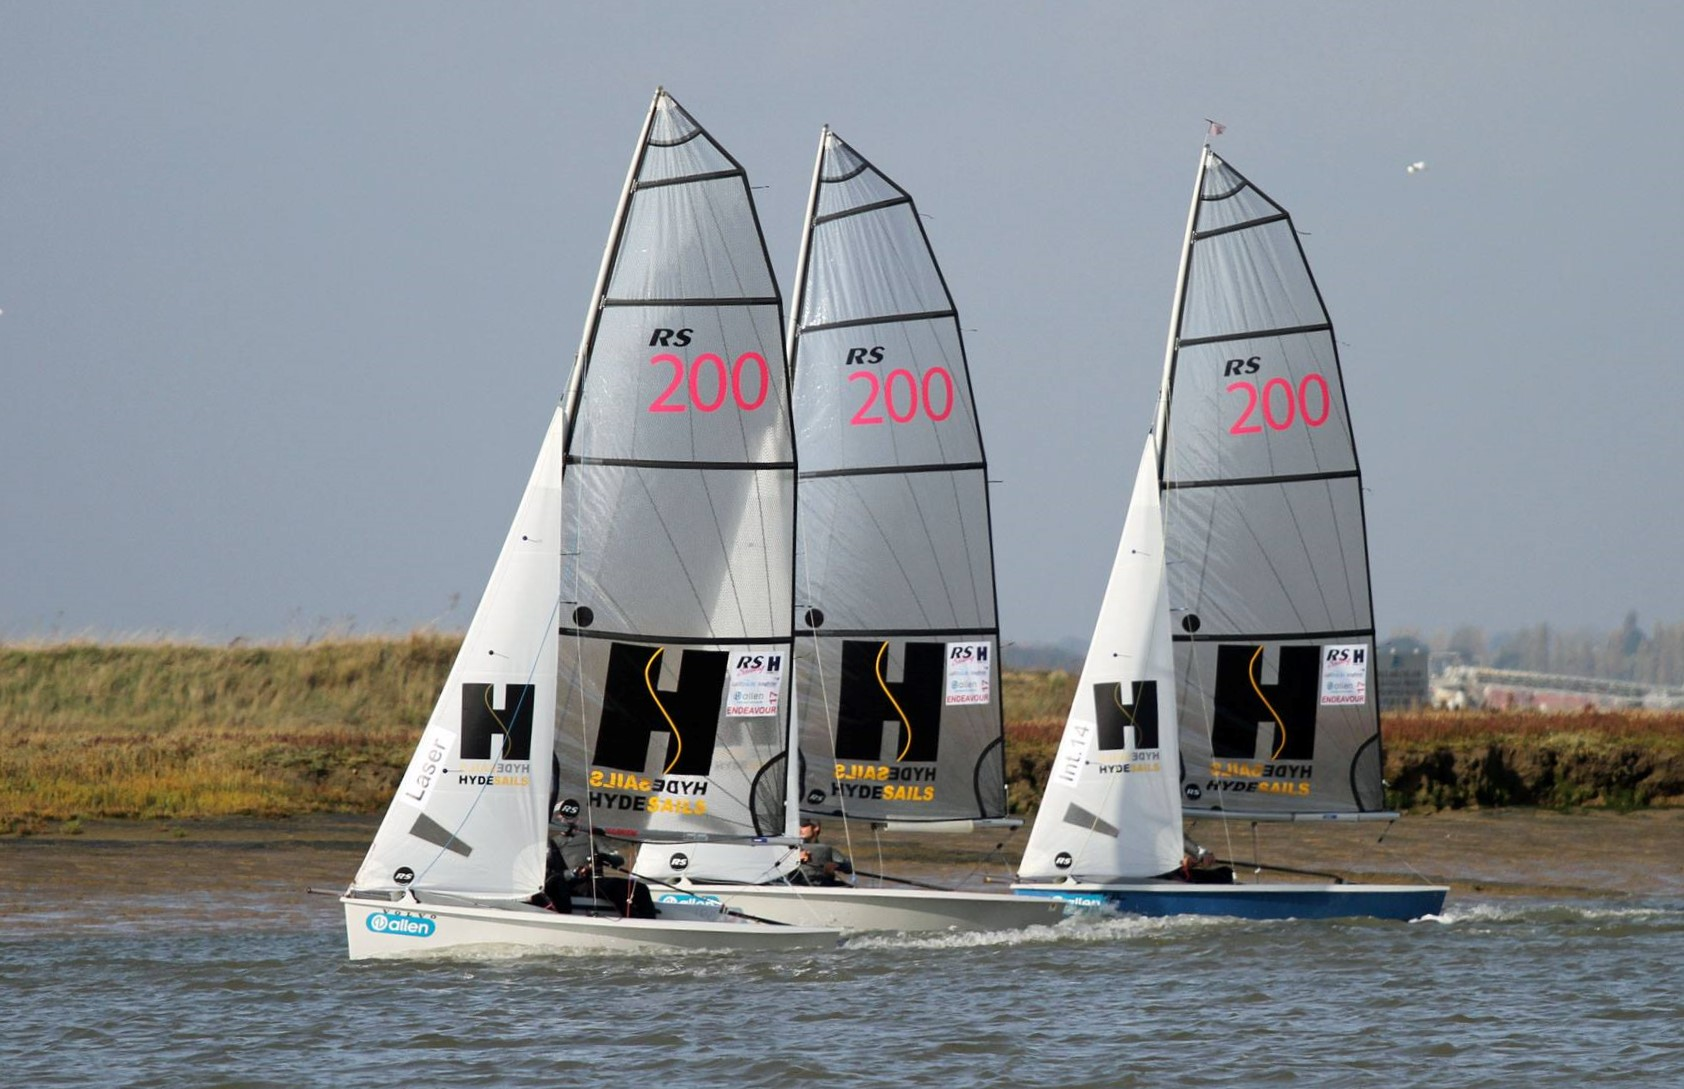 Hugging the shoreline in less tide at the Endeavour Trophy.